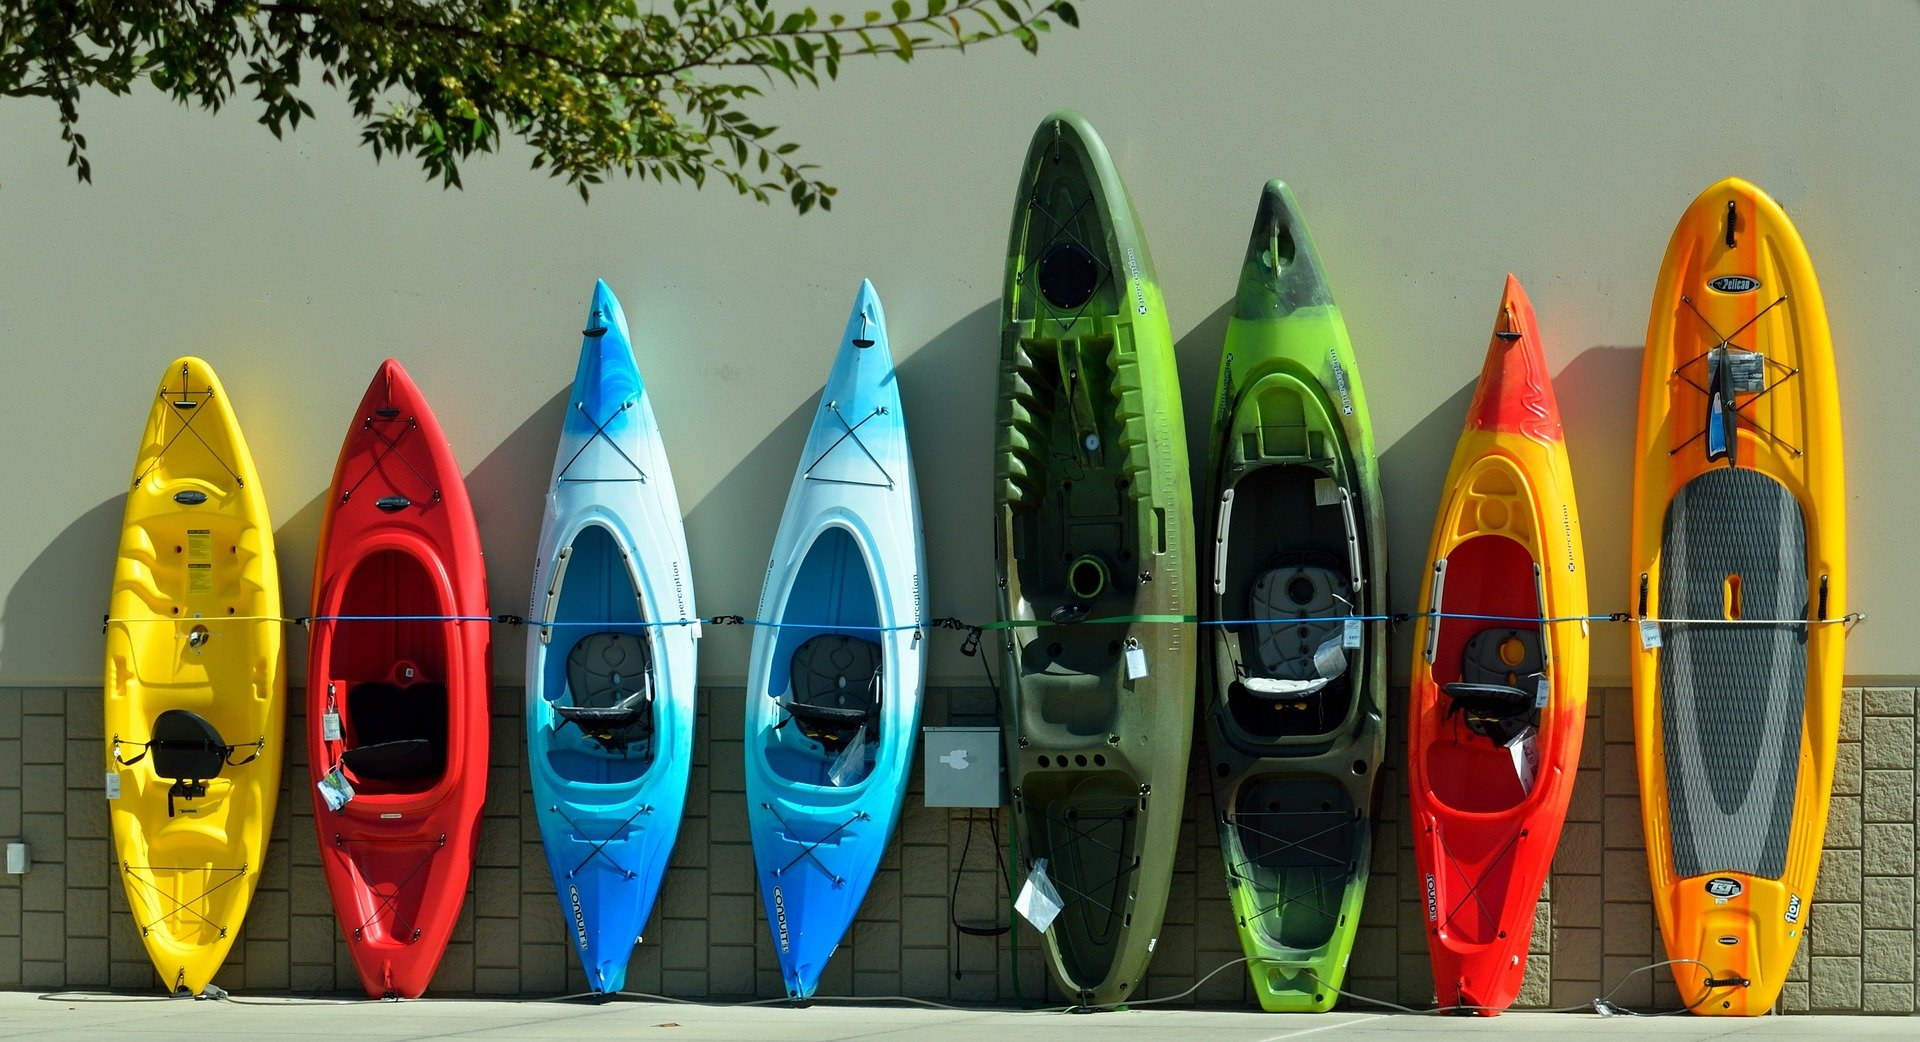 Colorful kayaks leaning against a wall.